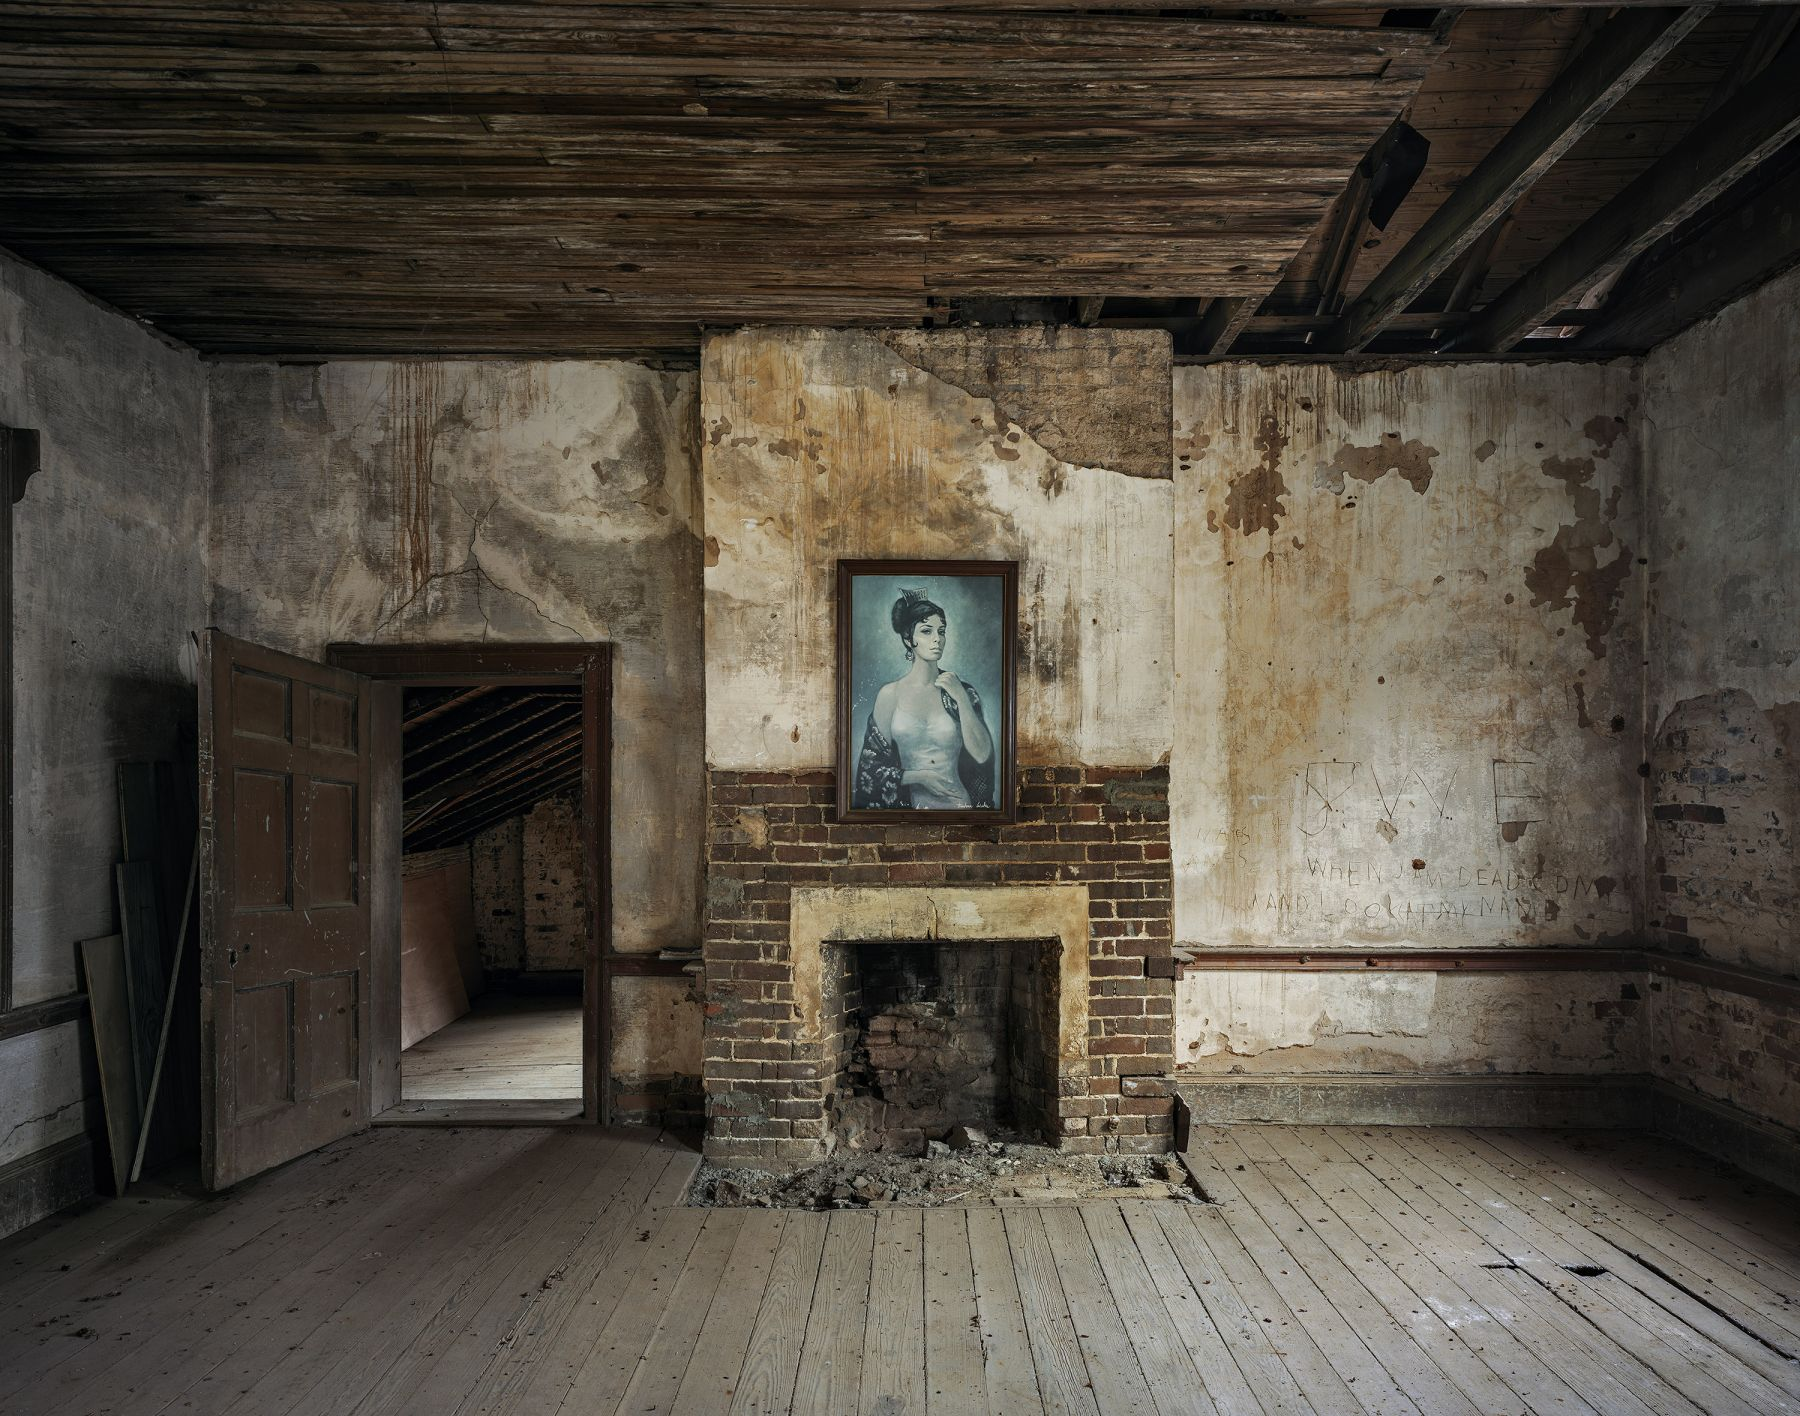 Andrew Moore,Carmen, Saunders Hall, Lawrence County, Alabama,2015. Archival pigment print, 50 x 60 inches.